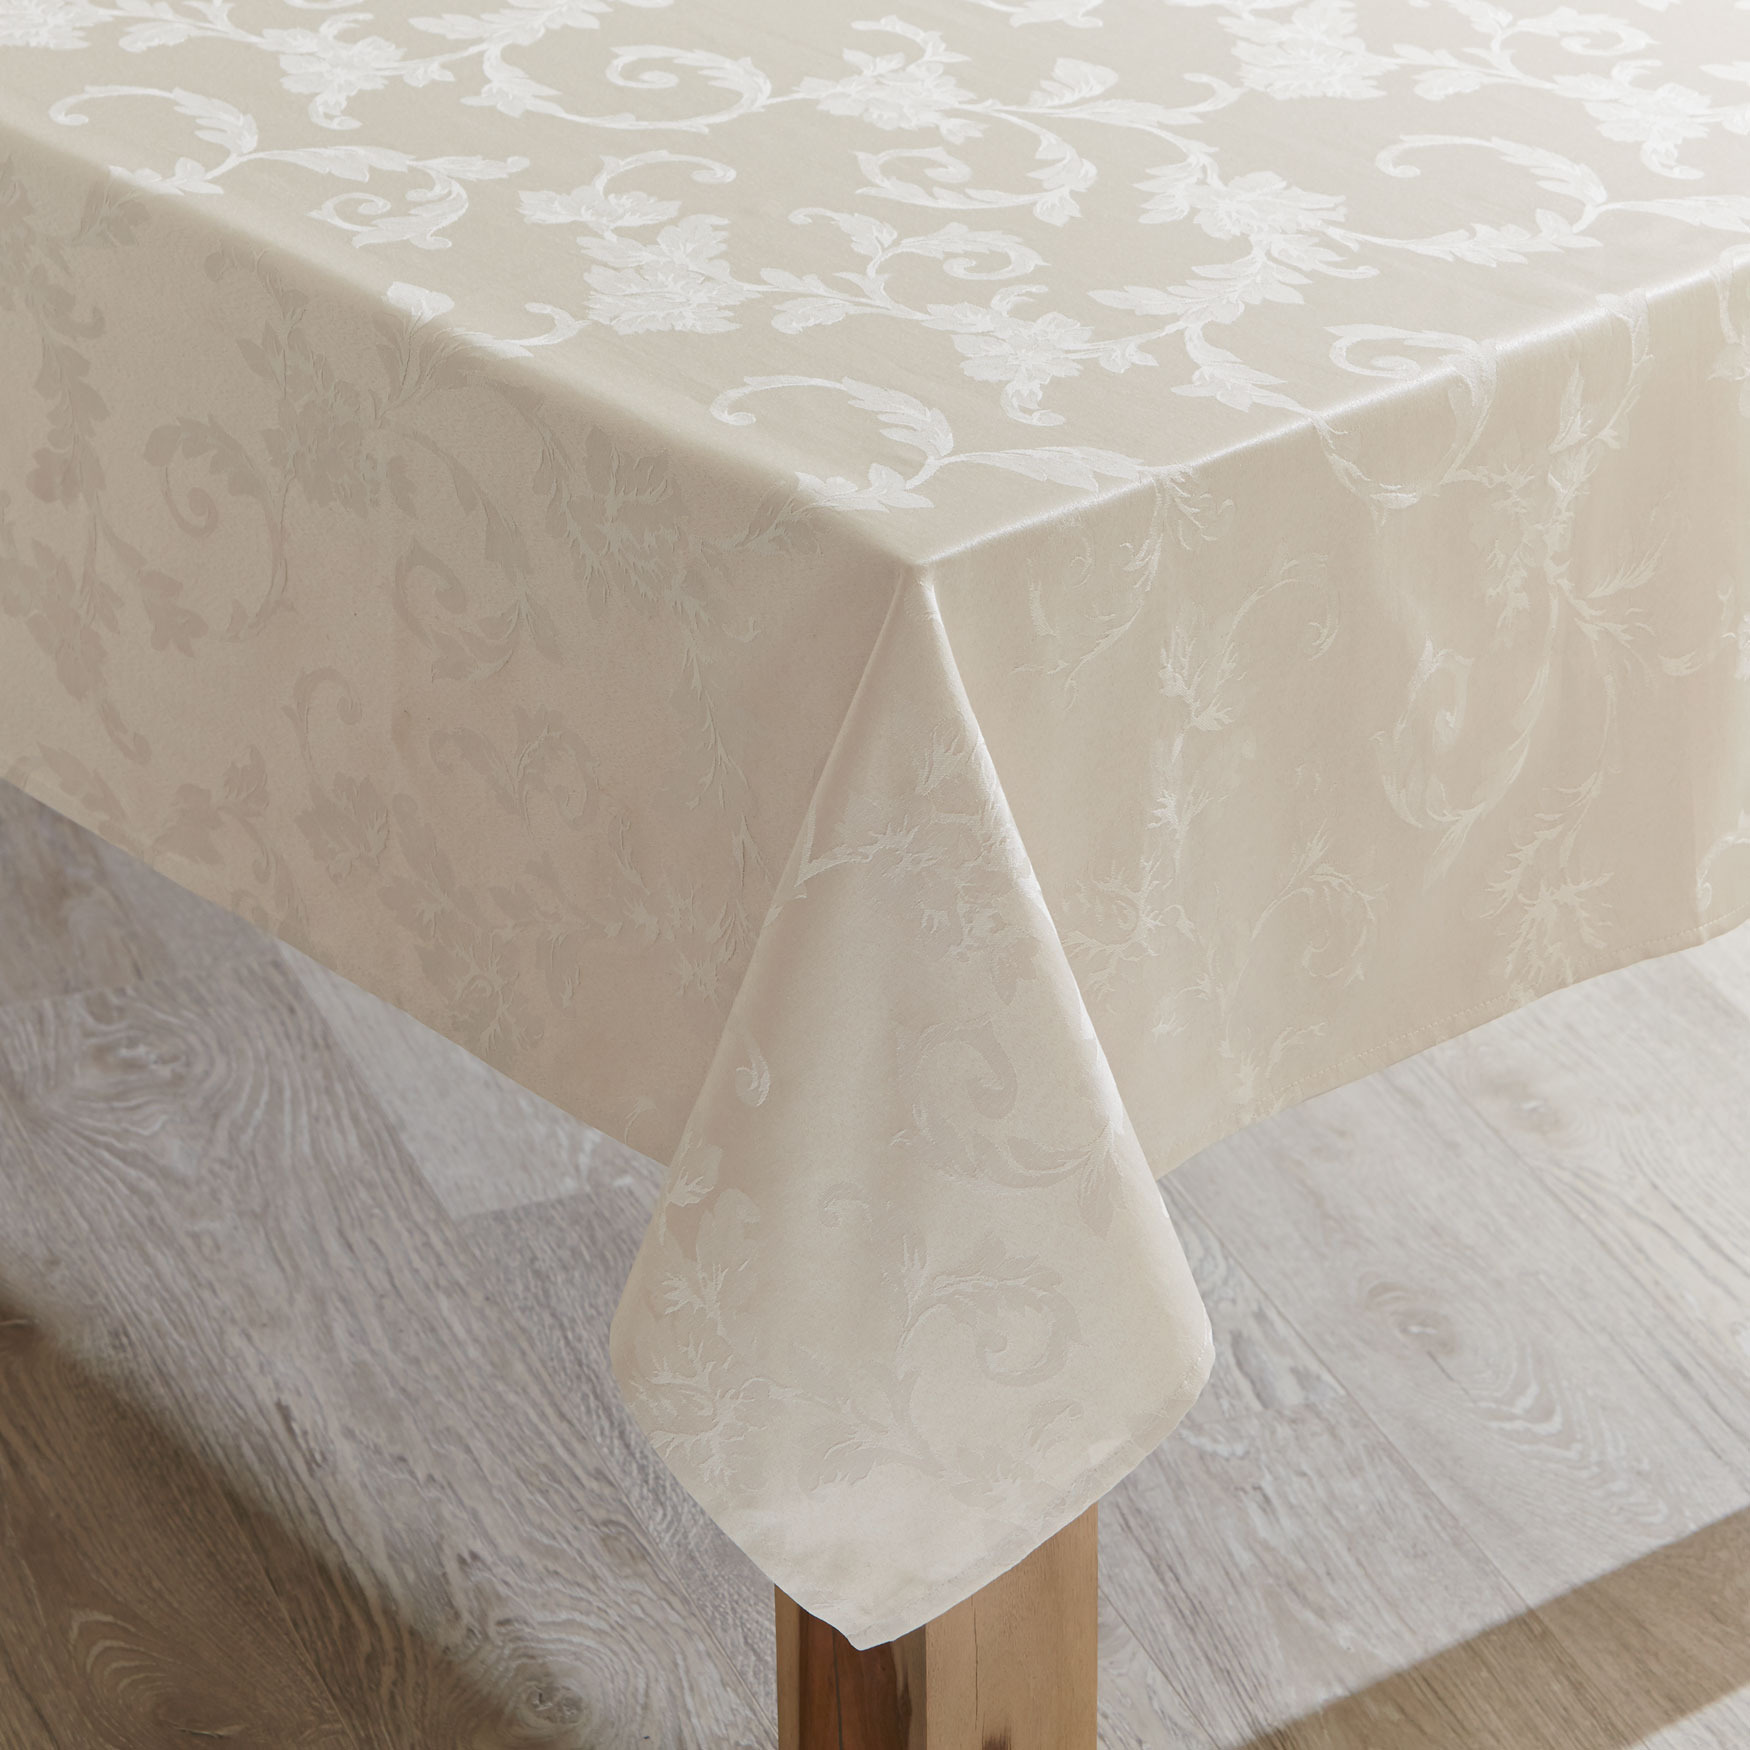 60' x 120' Grand Luxe Tablecloth , BIRCH